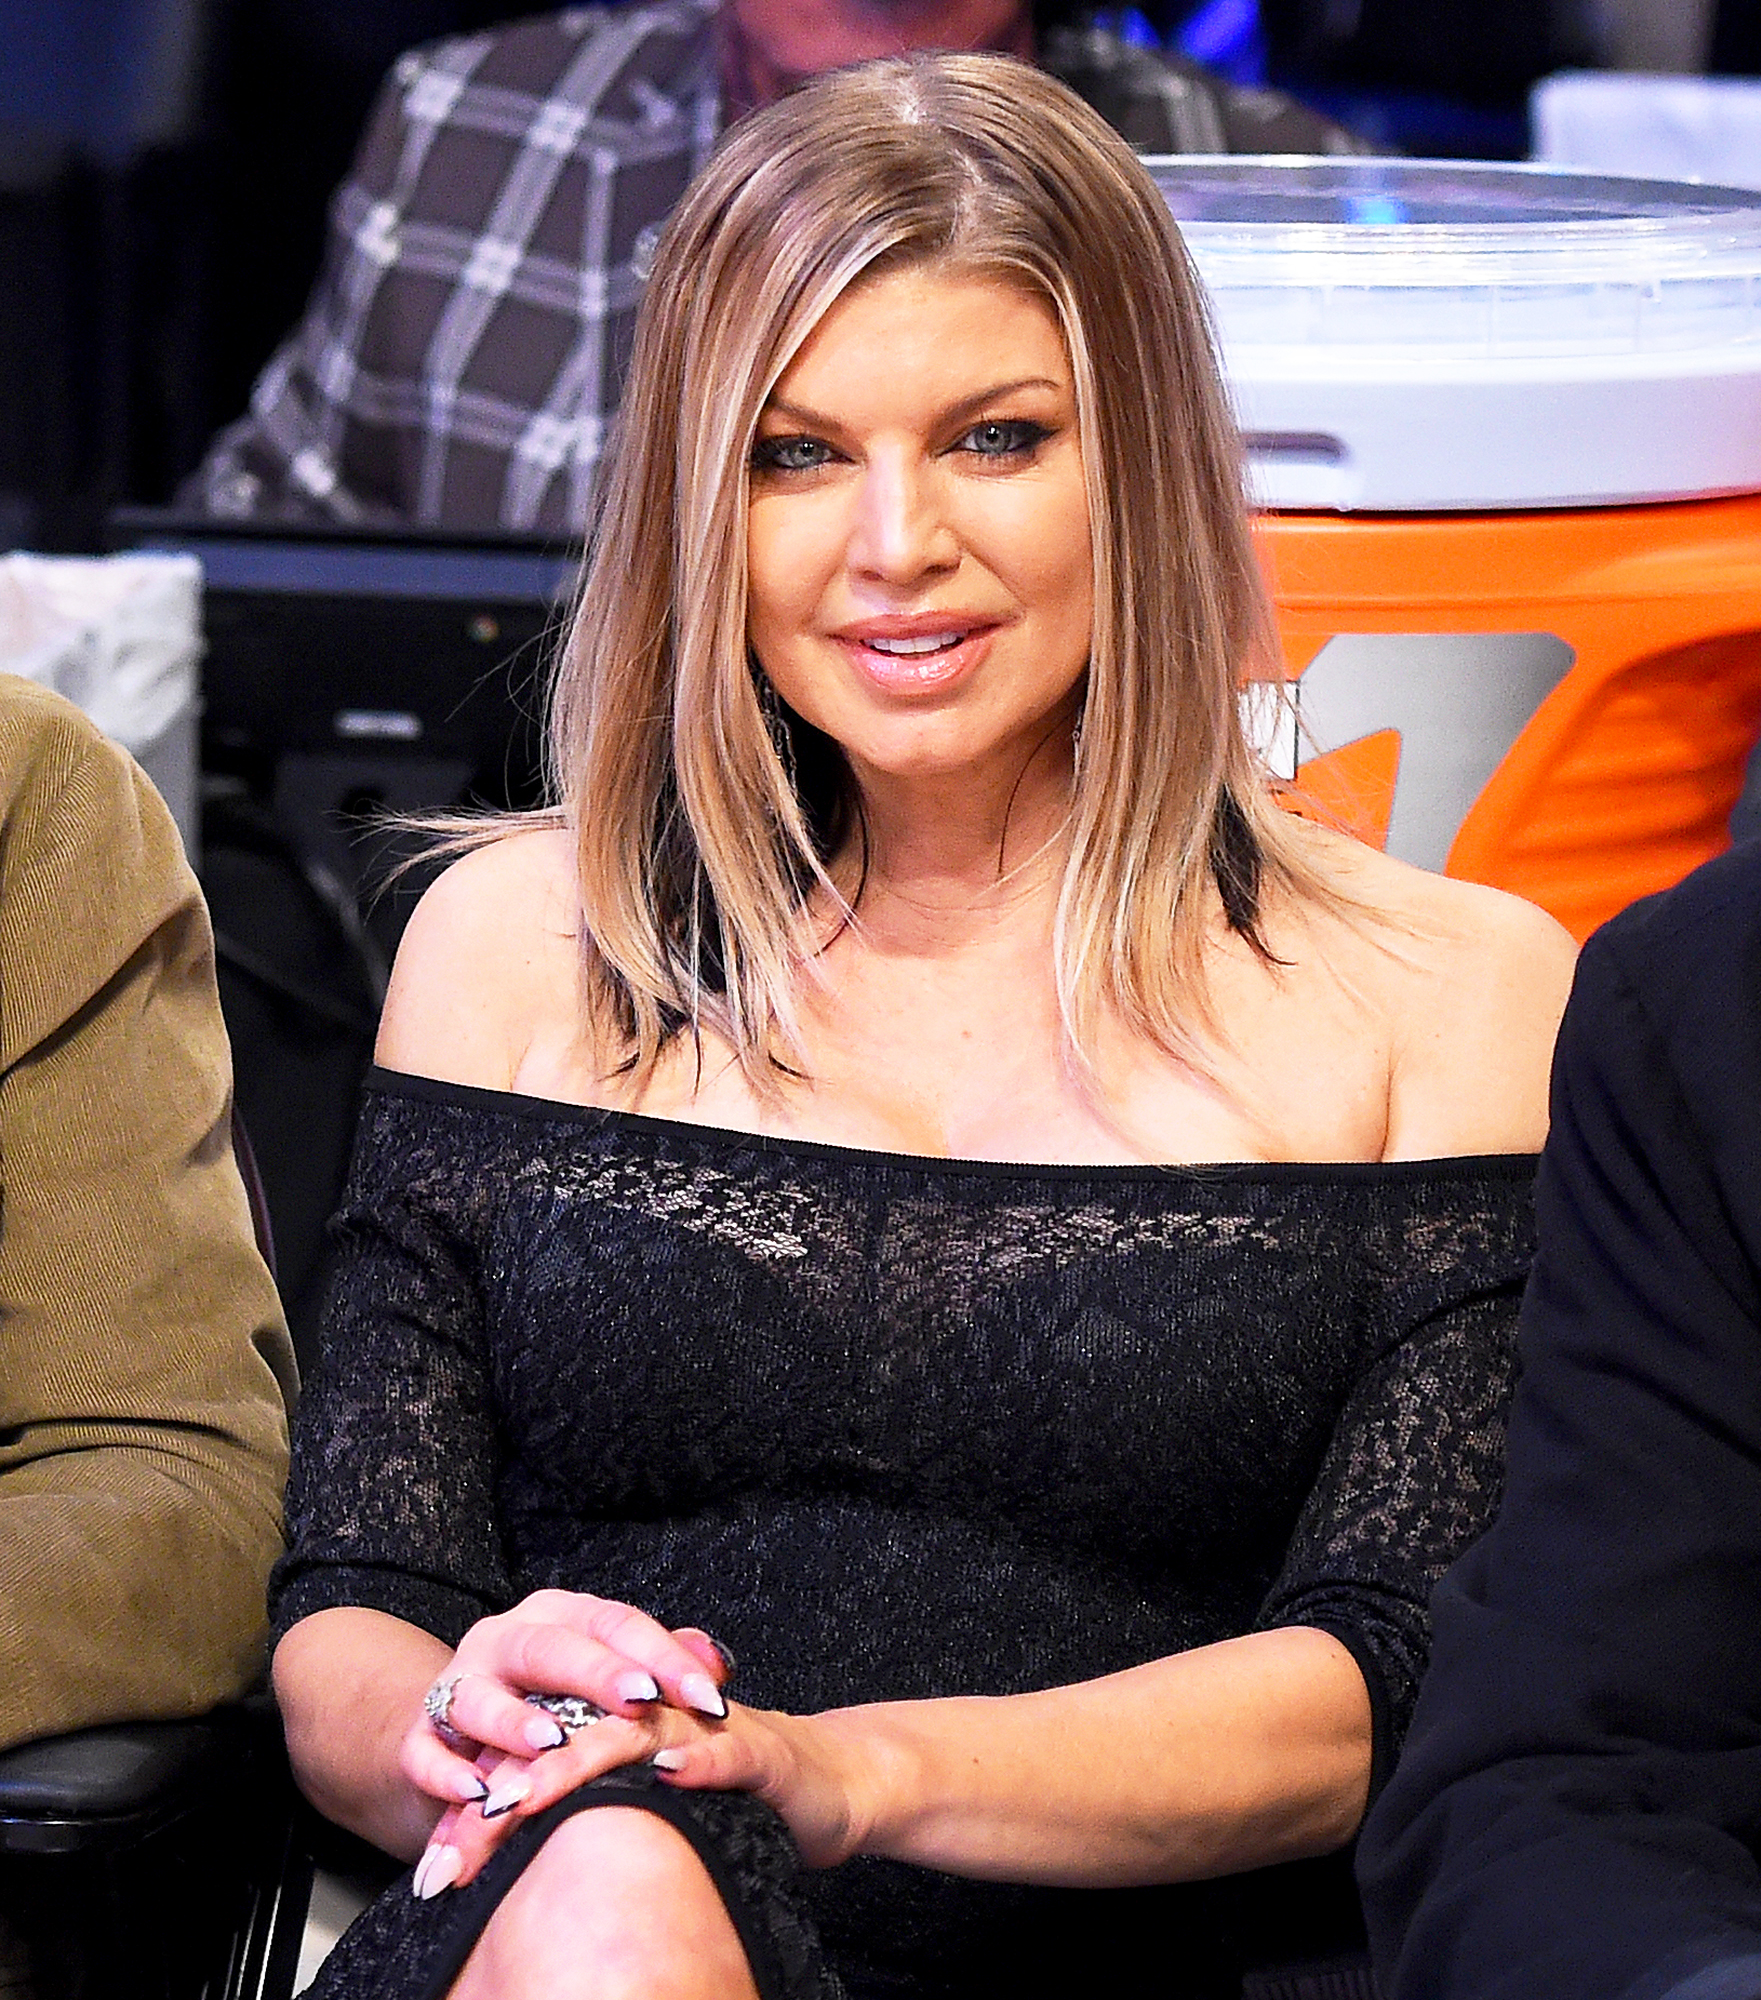 Fergie's National Anthem Performance at NBA All-Star Game Was Roasted on Twitter